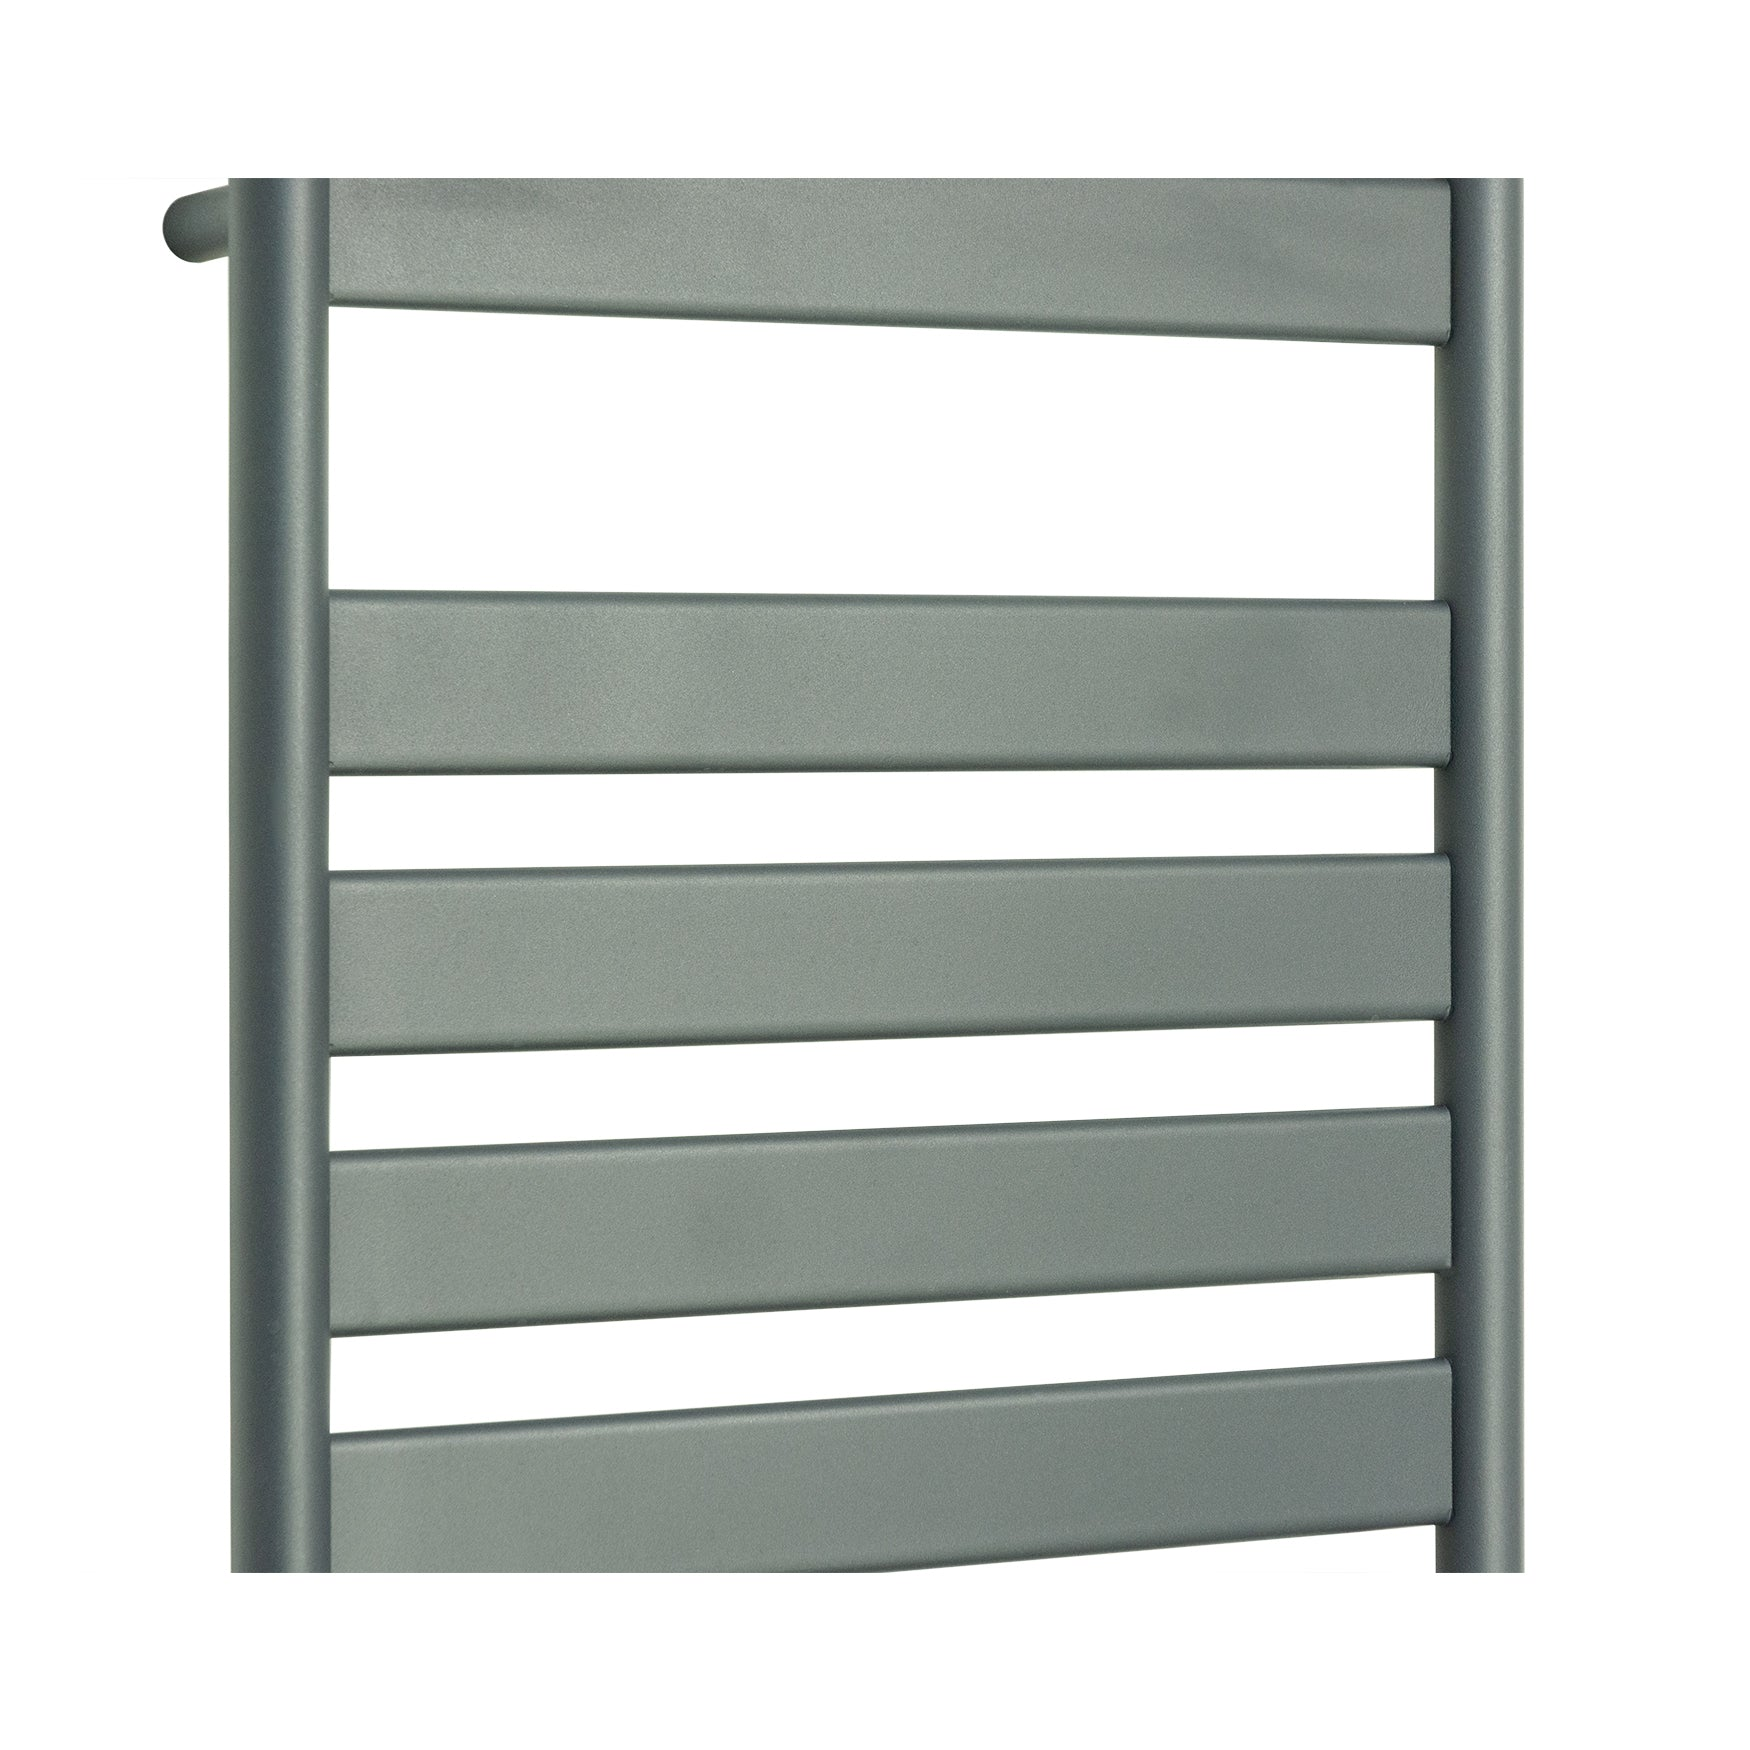 500mm Wide 950mm High Flat Panel Designer Anthracite Heated Towel Rail Radiator HTR